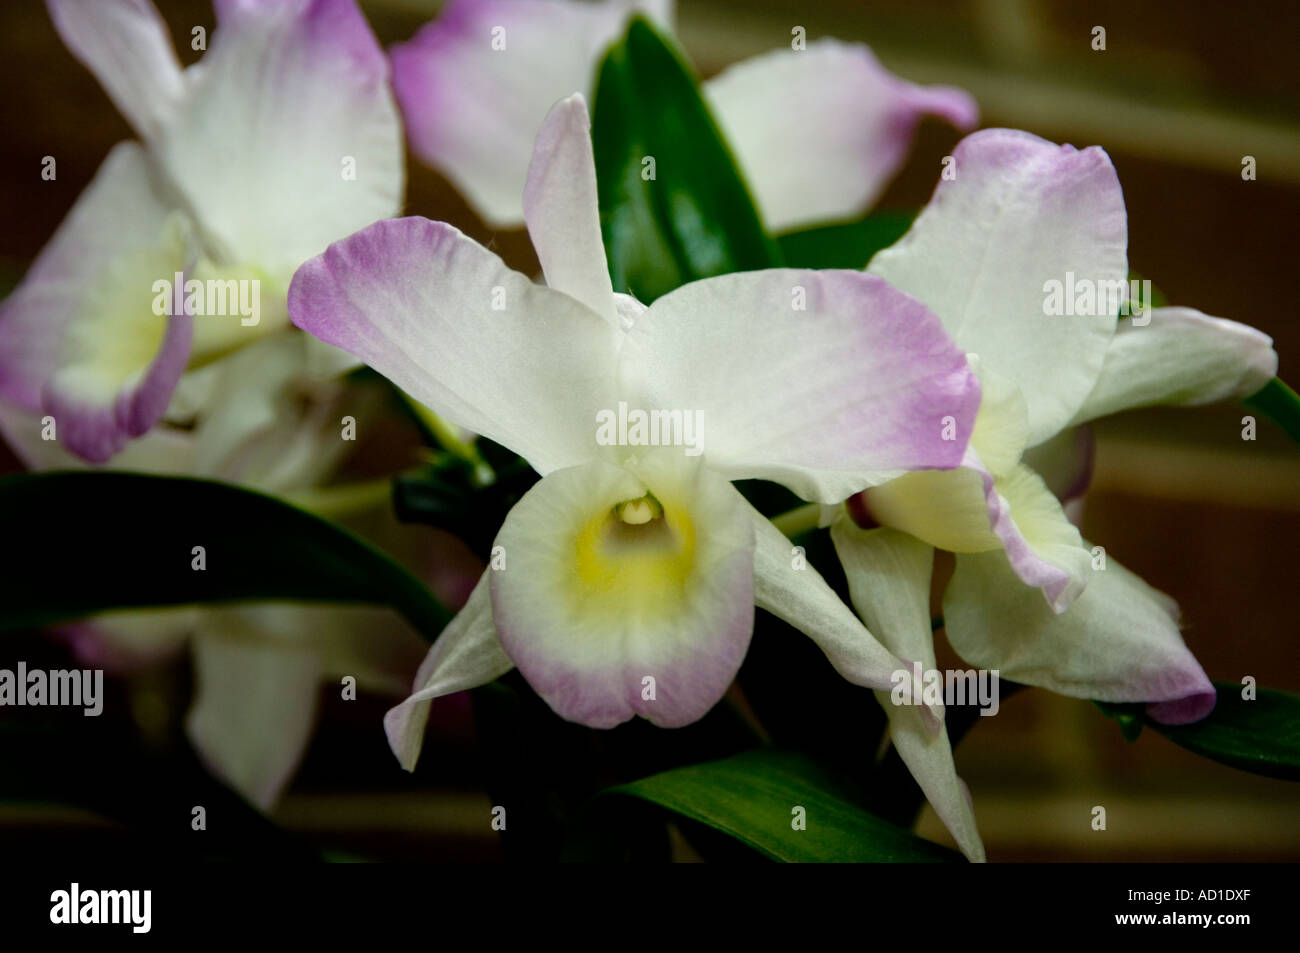 dendrobium nobile orchid hybrid stock photo royalty free. Black Bedroom Furniture Sets. Home Design Ideas